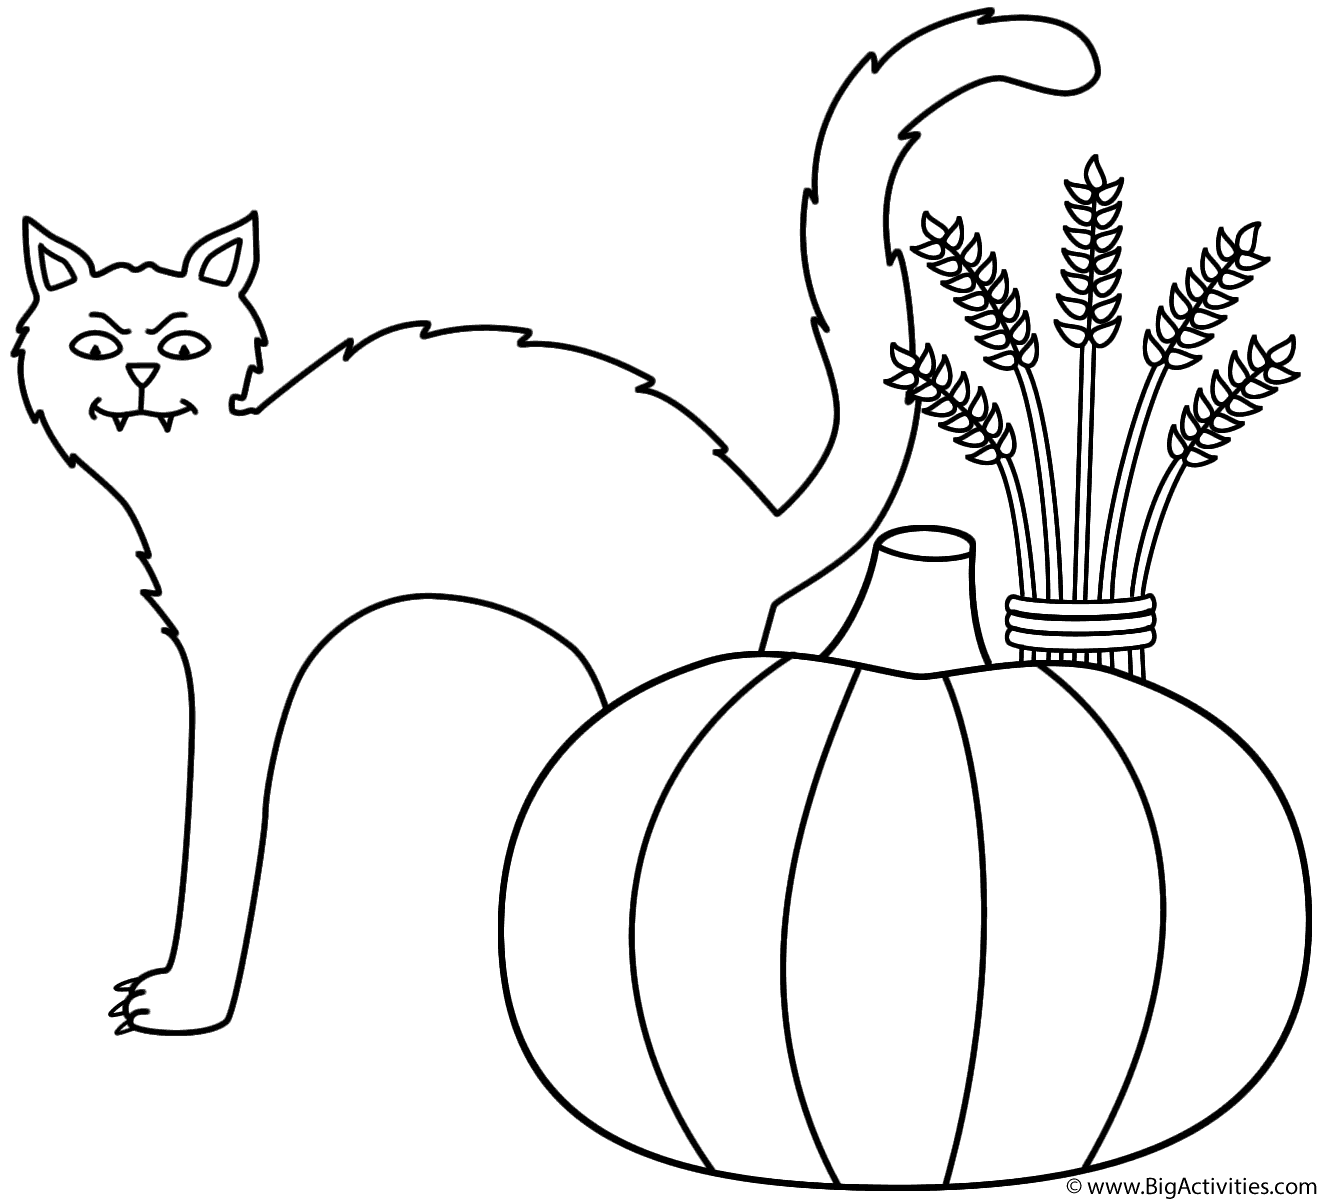 cat black coloring pages as well as worksheet jobs pdf as well as